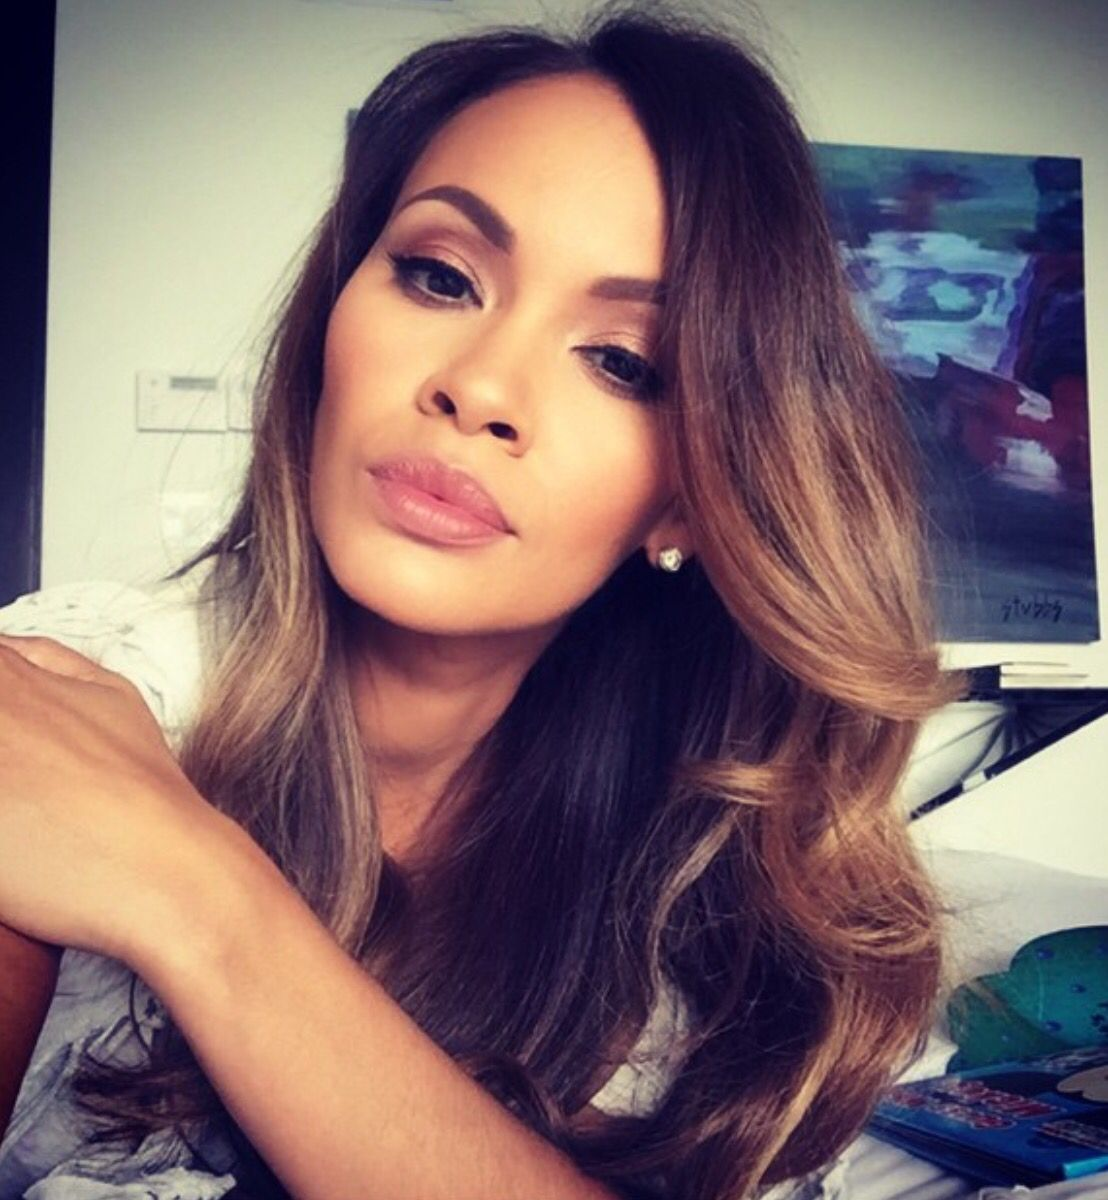 Cleavage Evelyn Lozada naked (28 photos), Topless, Hot, Instagram, swimsuit 2017